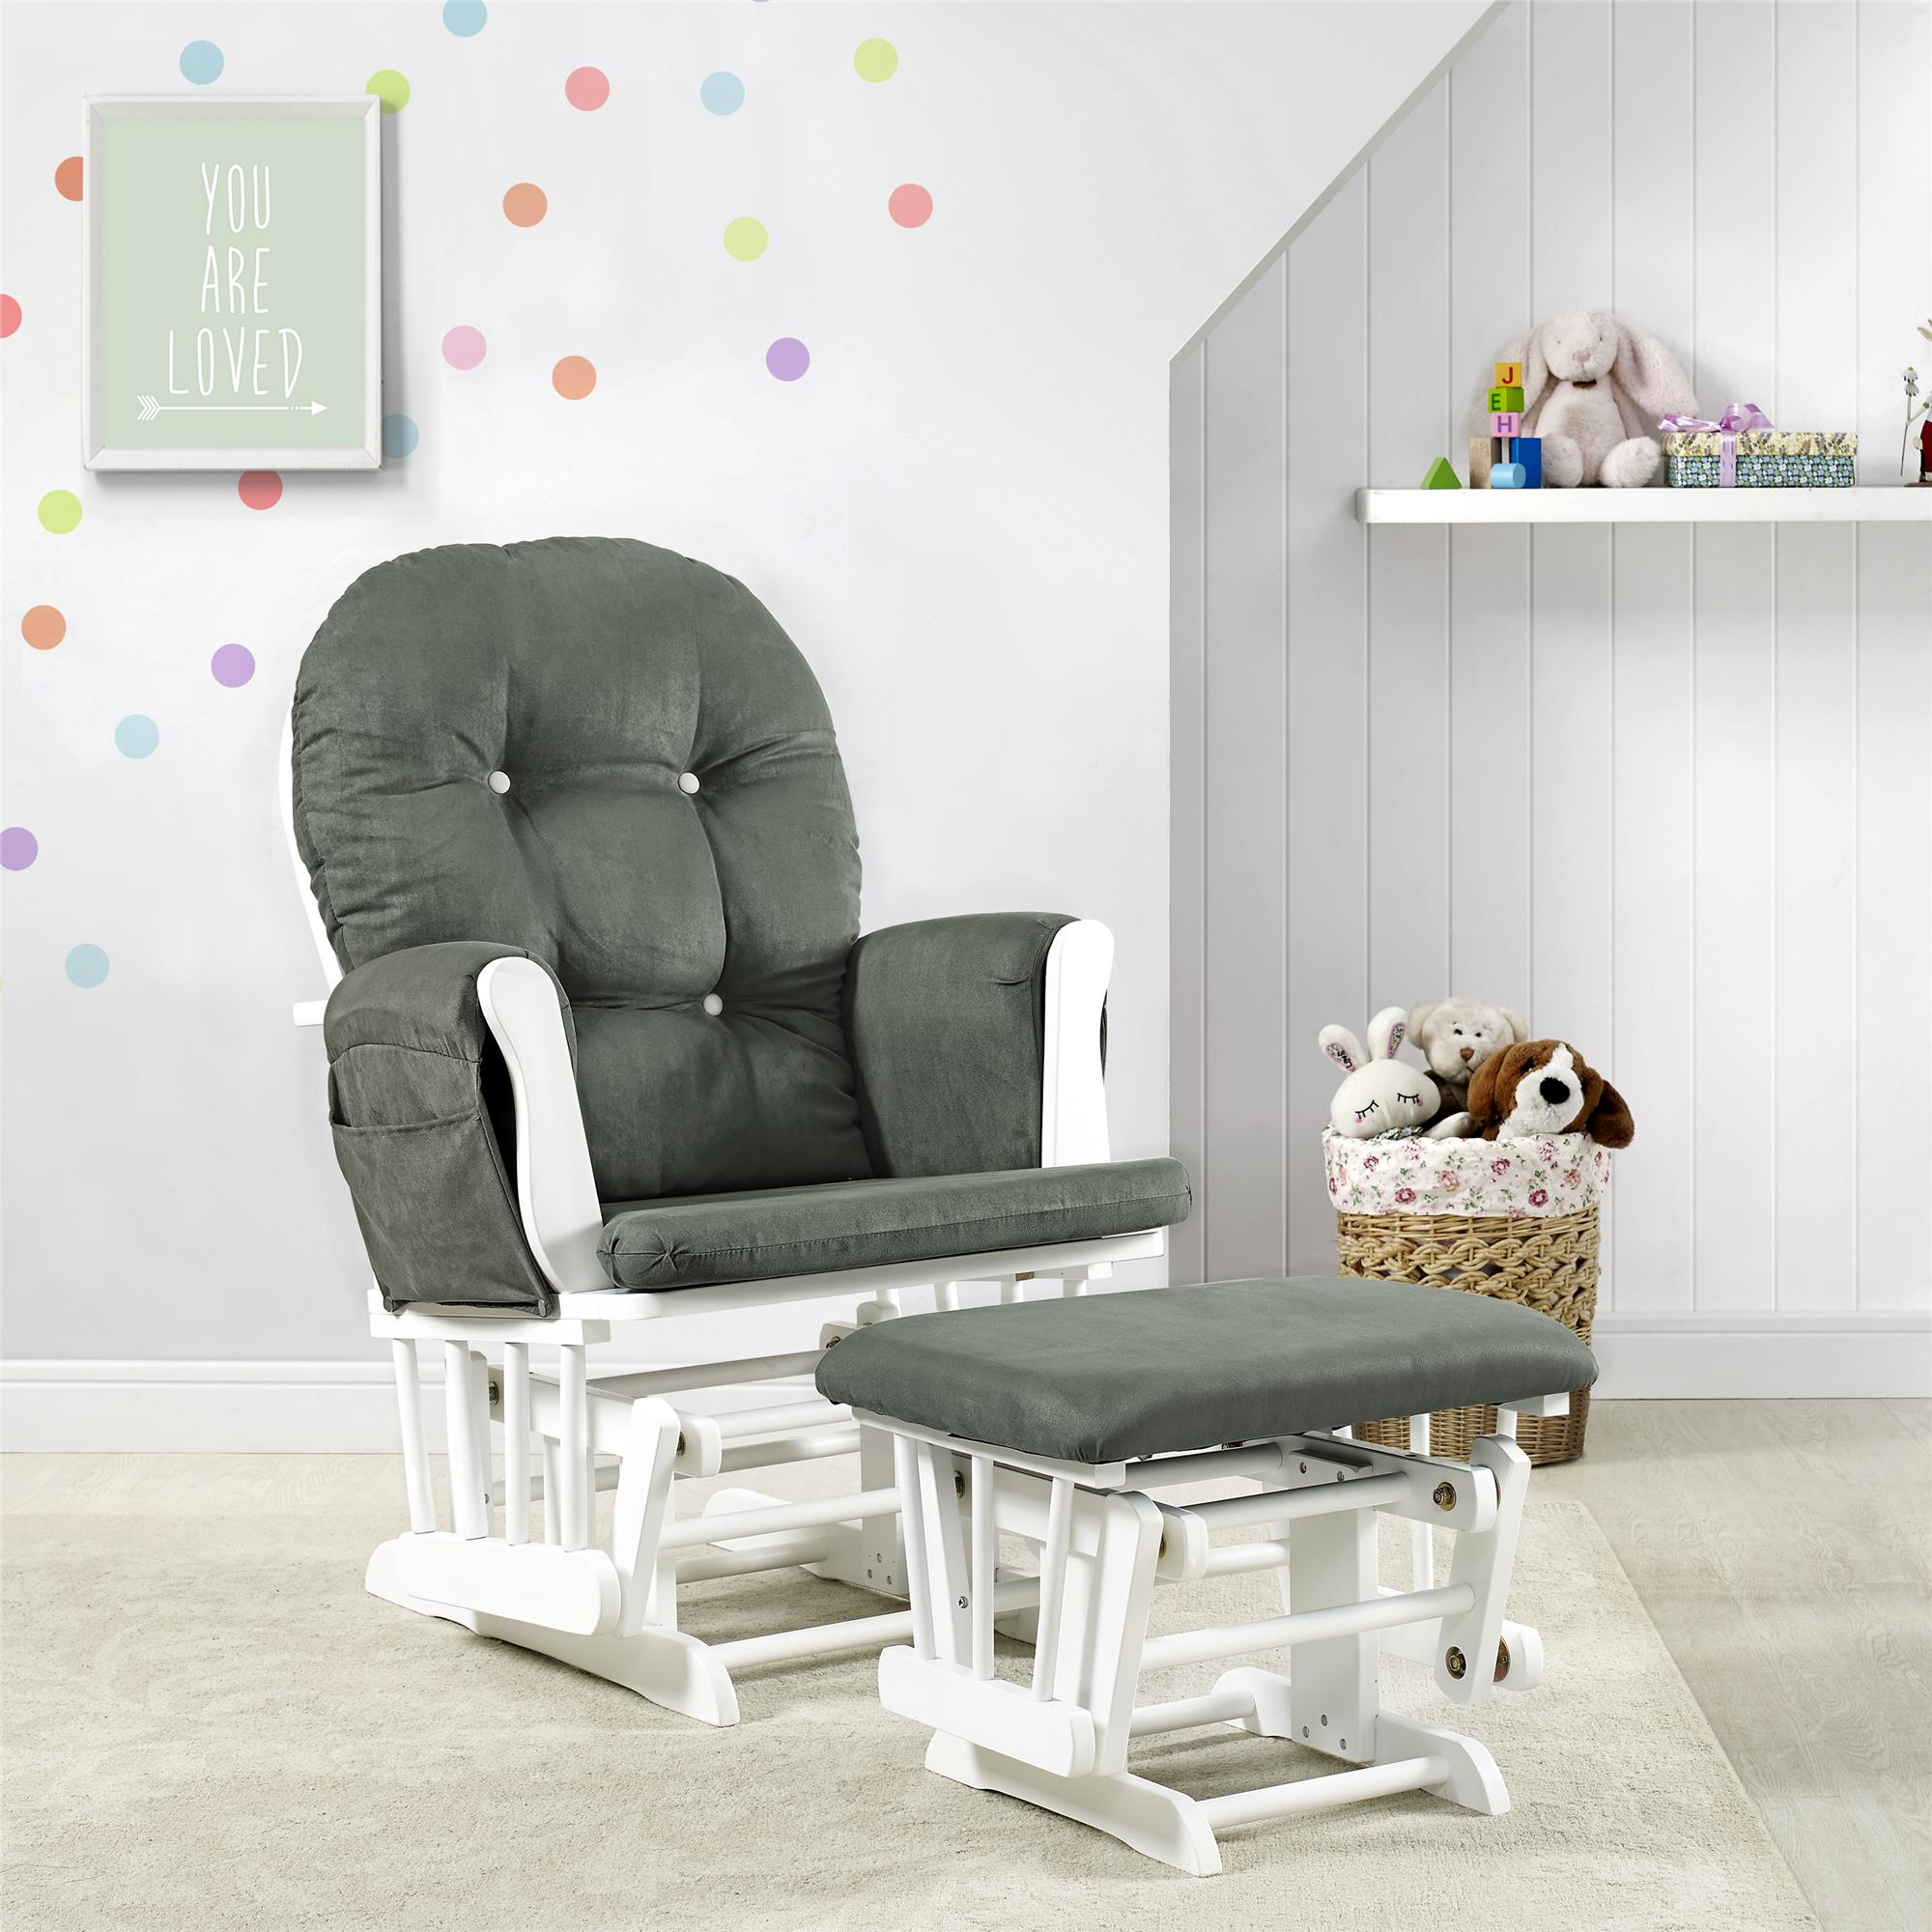 Baby Relax Carly Glider and Ottoman, White with Gray microfiber